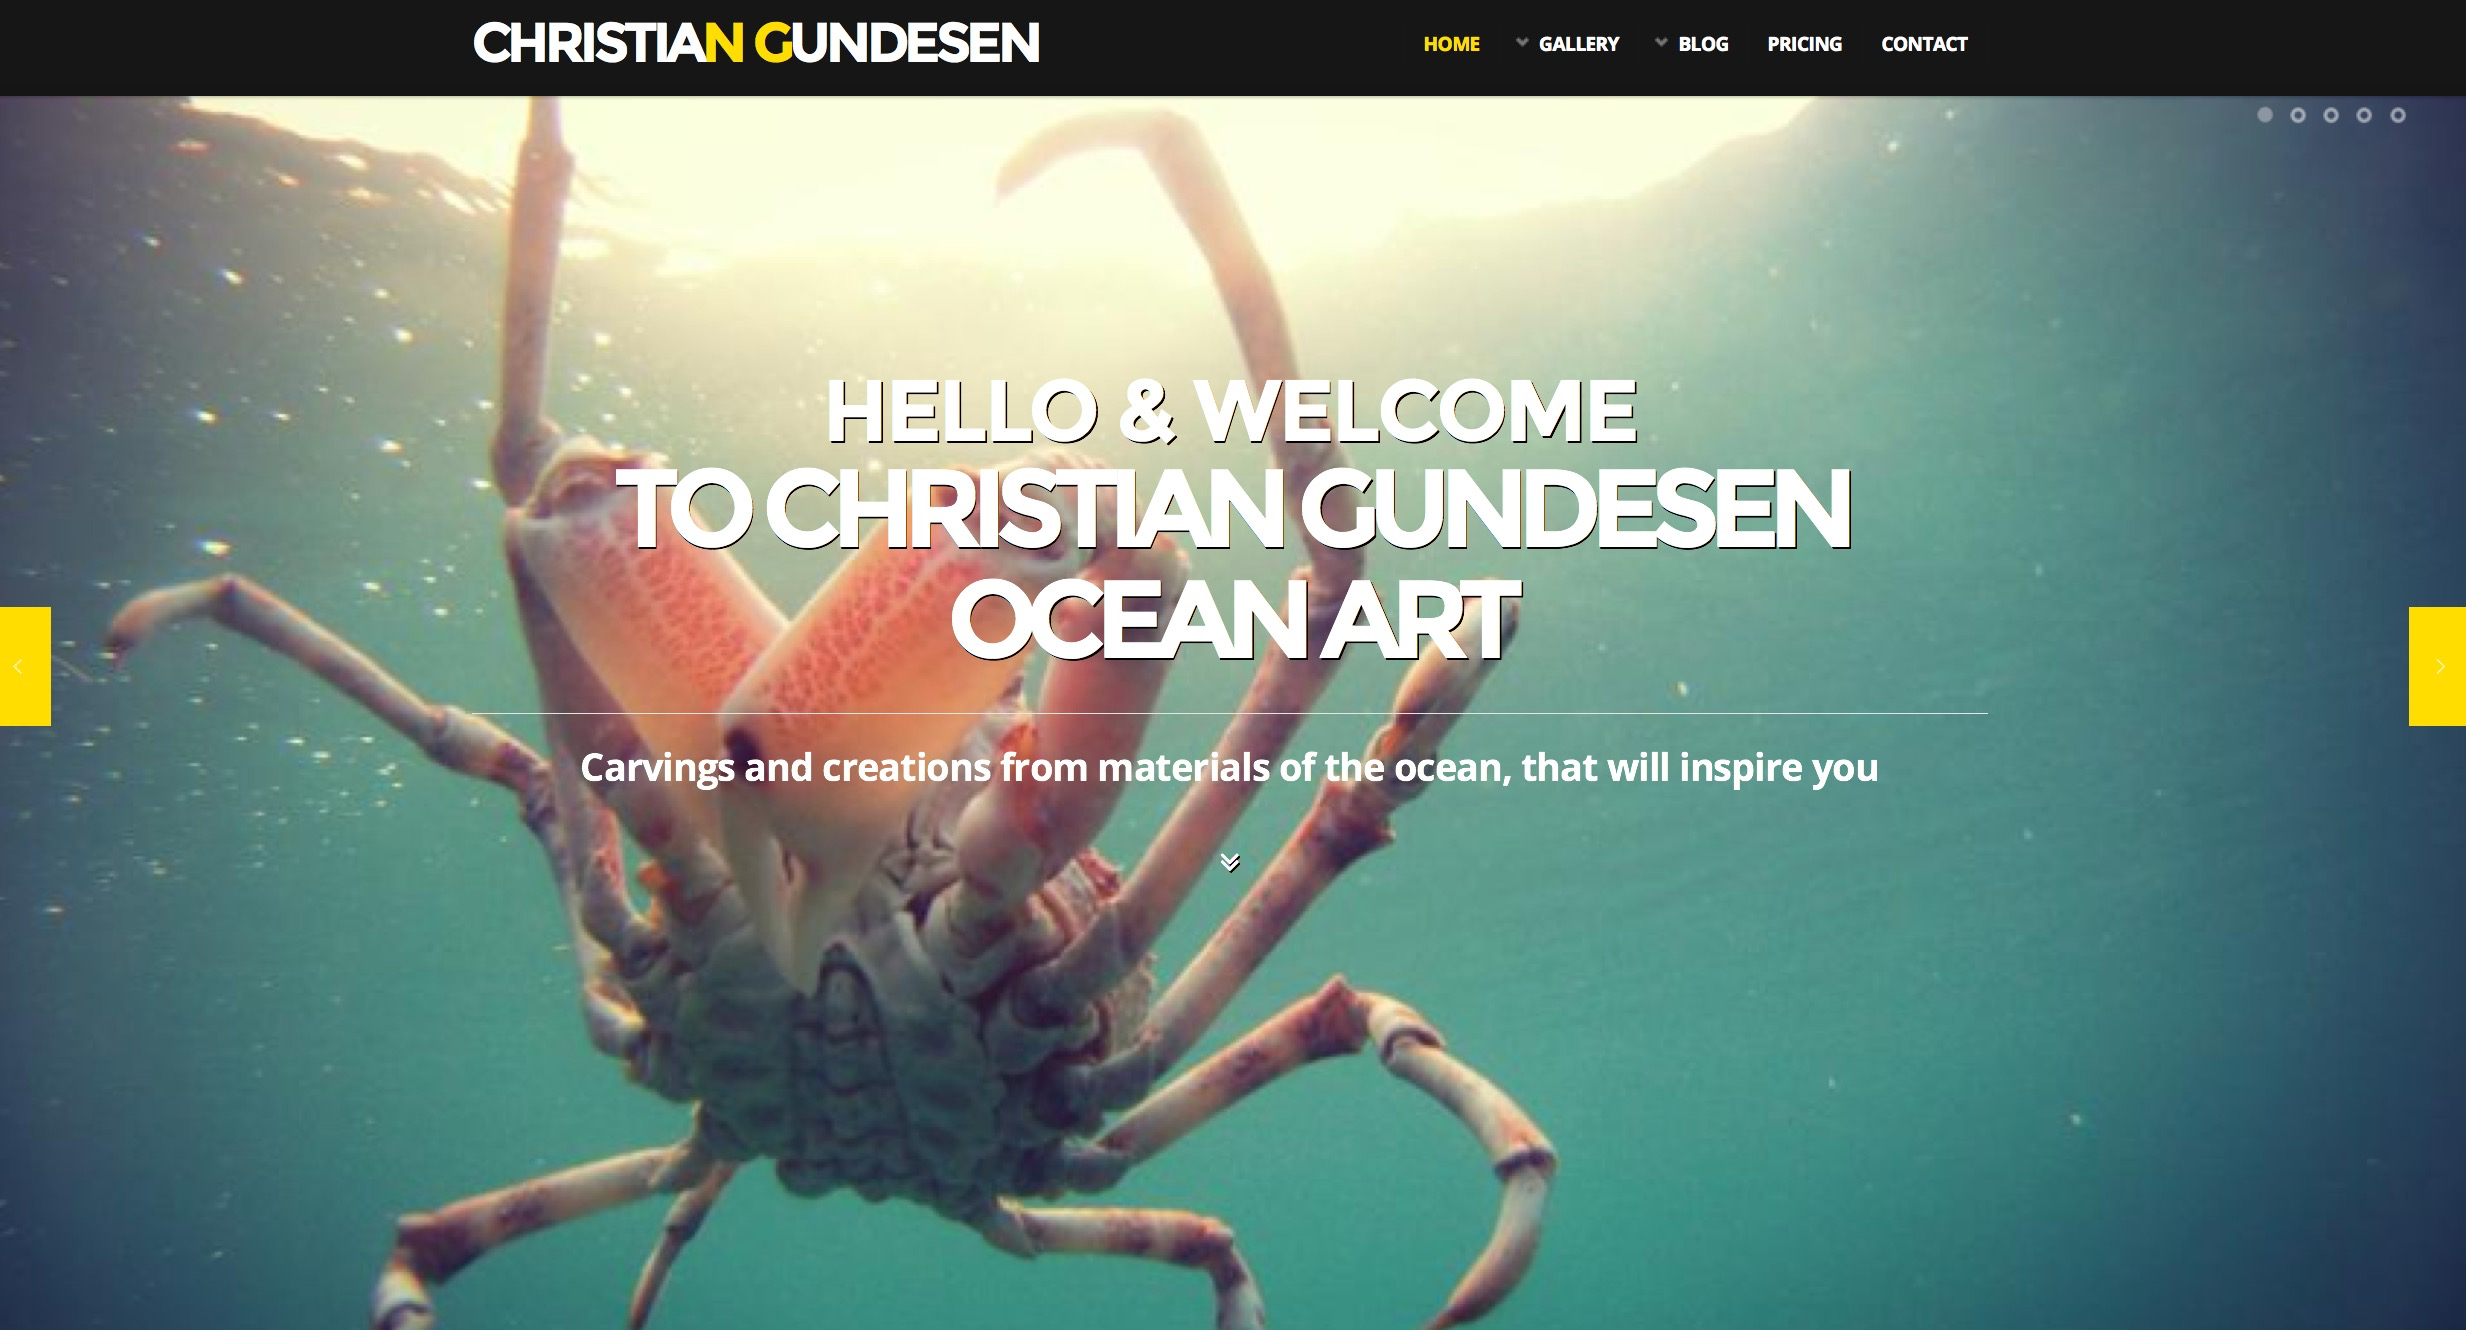 Christian Gundesen Ocean Art Website